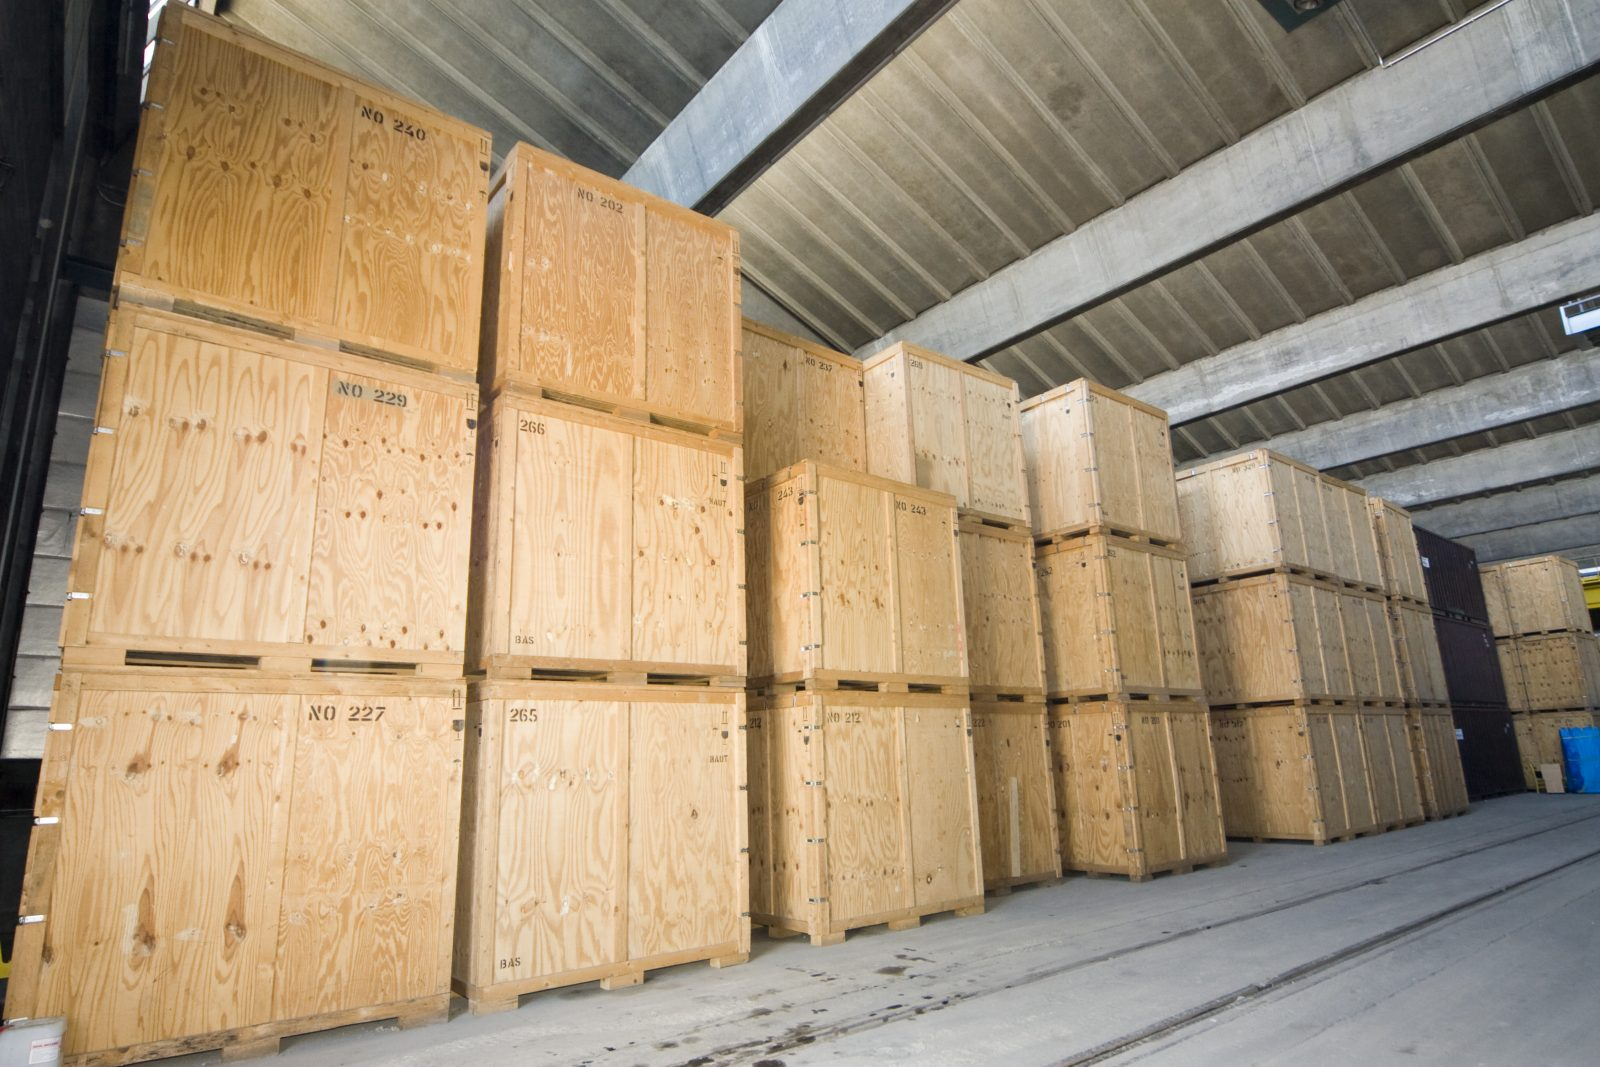 Meubles Furniture Warehouse Moving Firm With Furniture Storage Services In Geneva